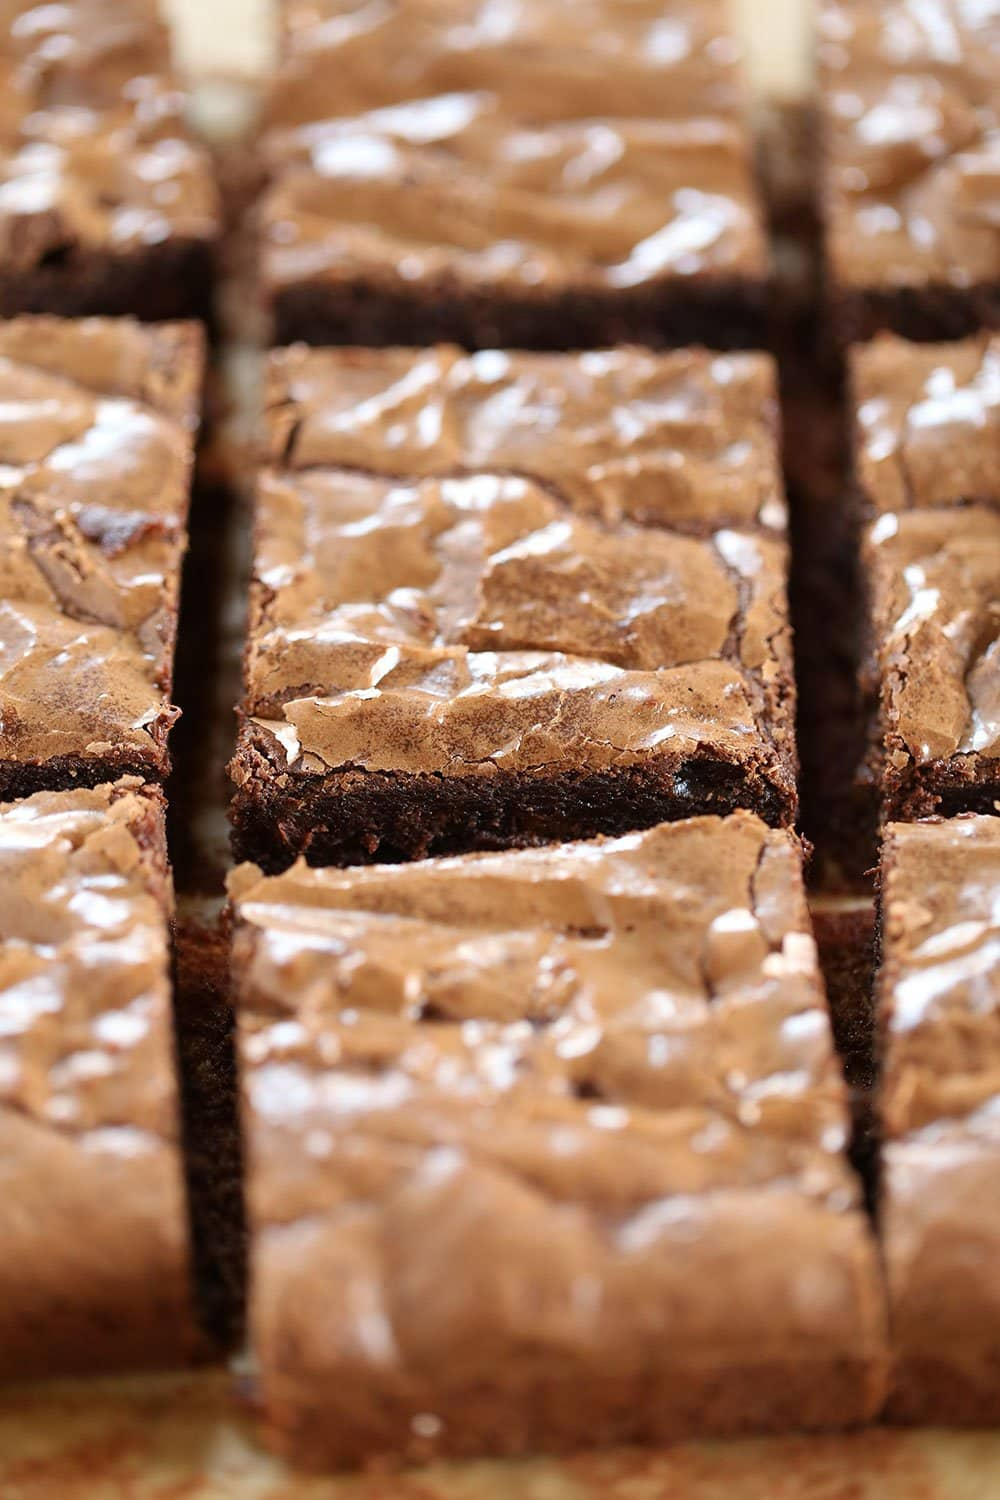 Best Easy Brownies require just 1 bowl, no mixer, and take less than an hour to make! They're tall, fudgy, and chewy with that thin shiny crust on top and tons of chocolate flavor.